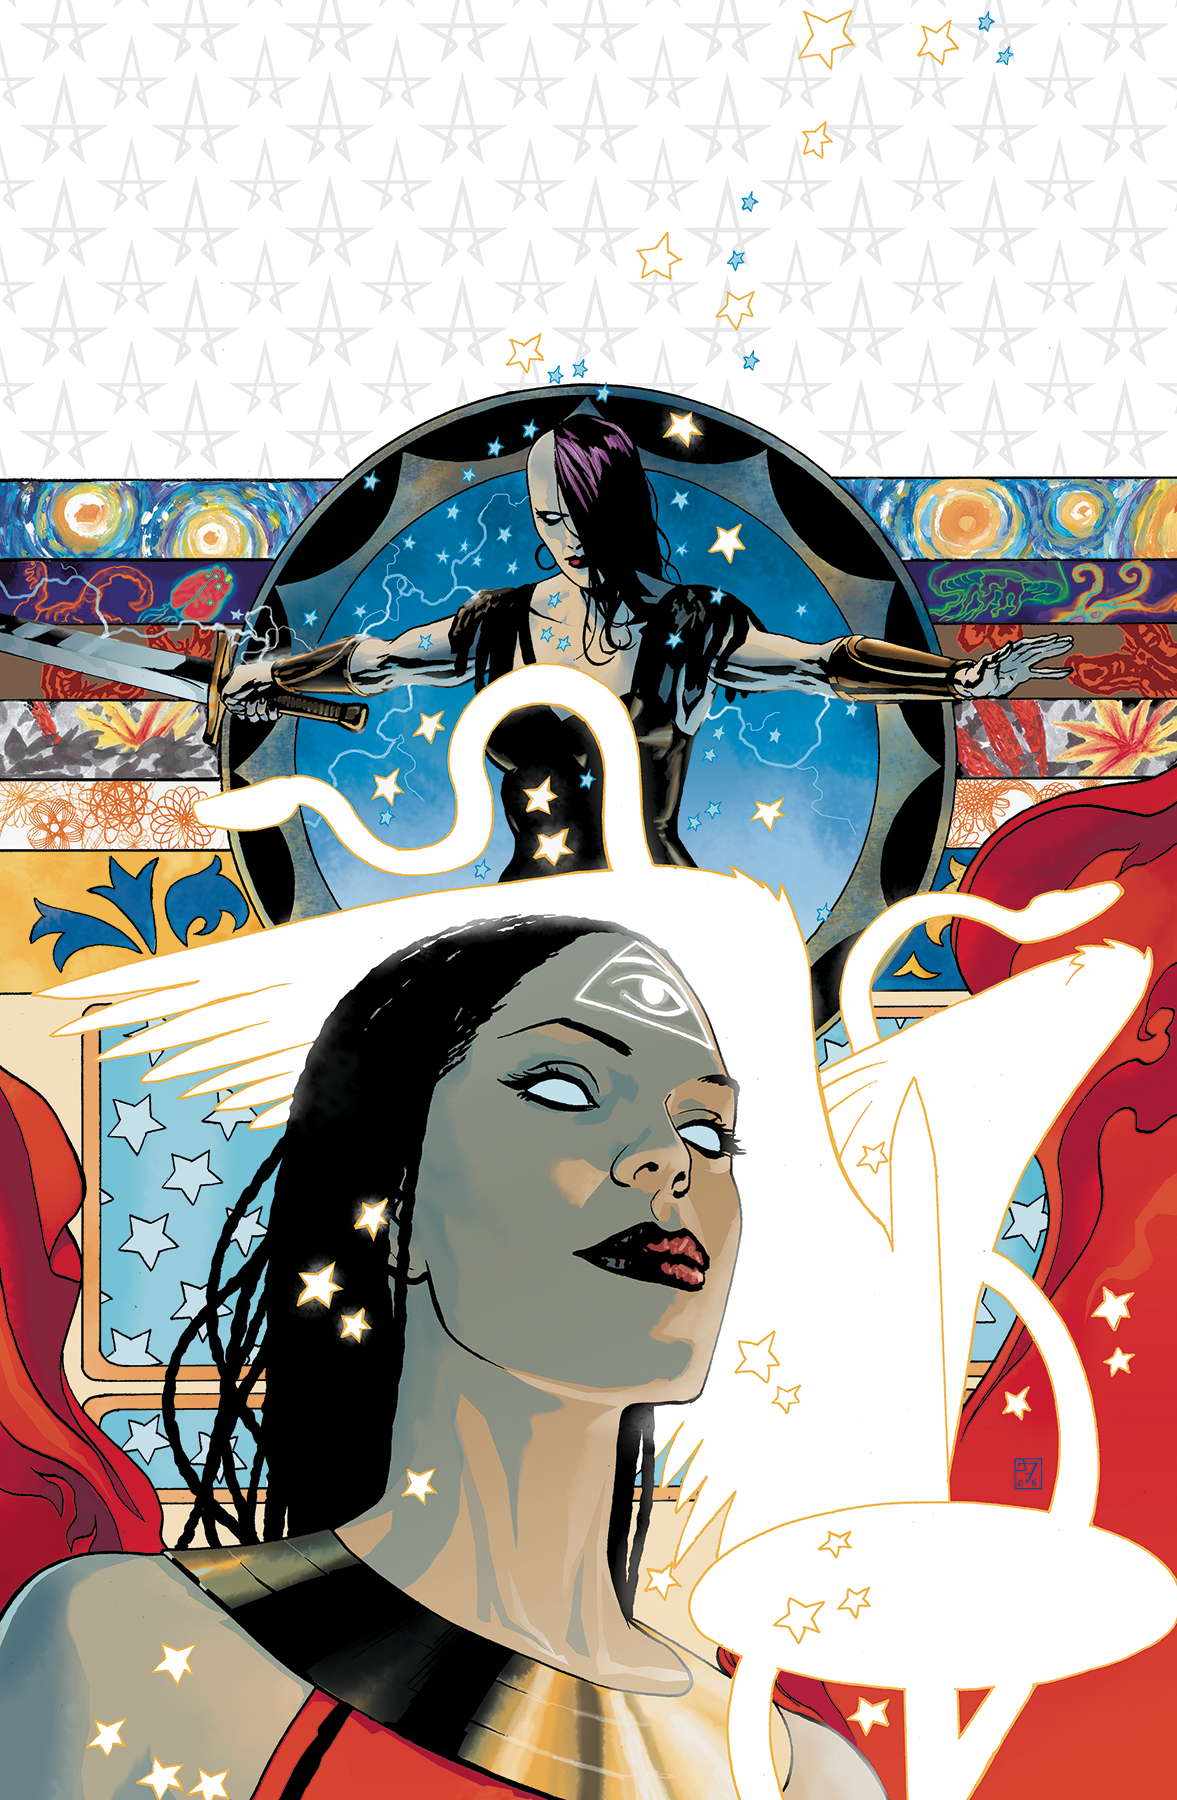 PROMETHEA THE DELUXE EDITION HC VOL 03